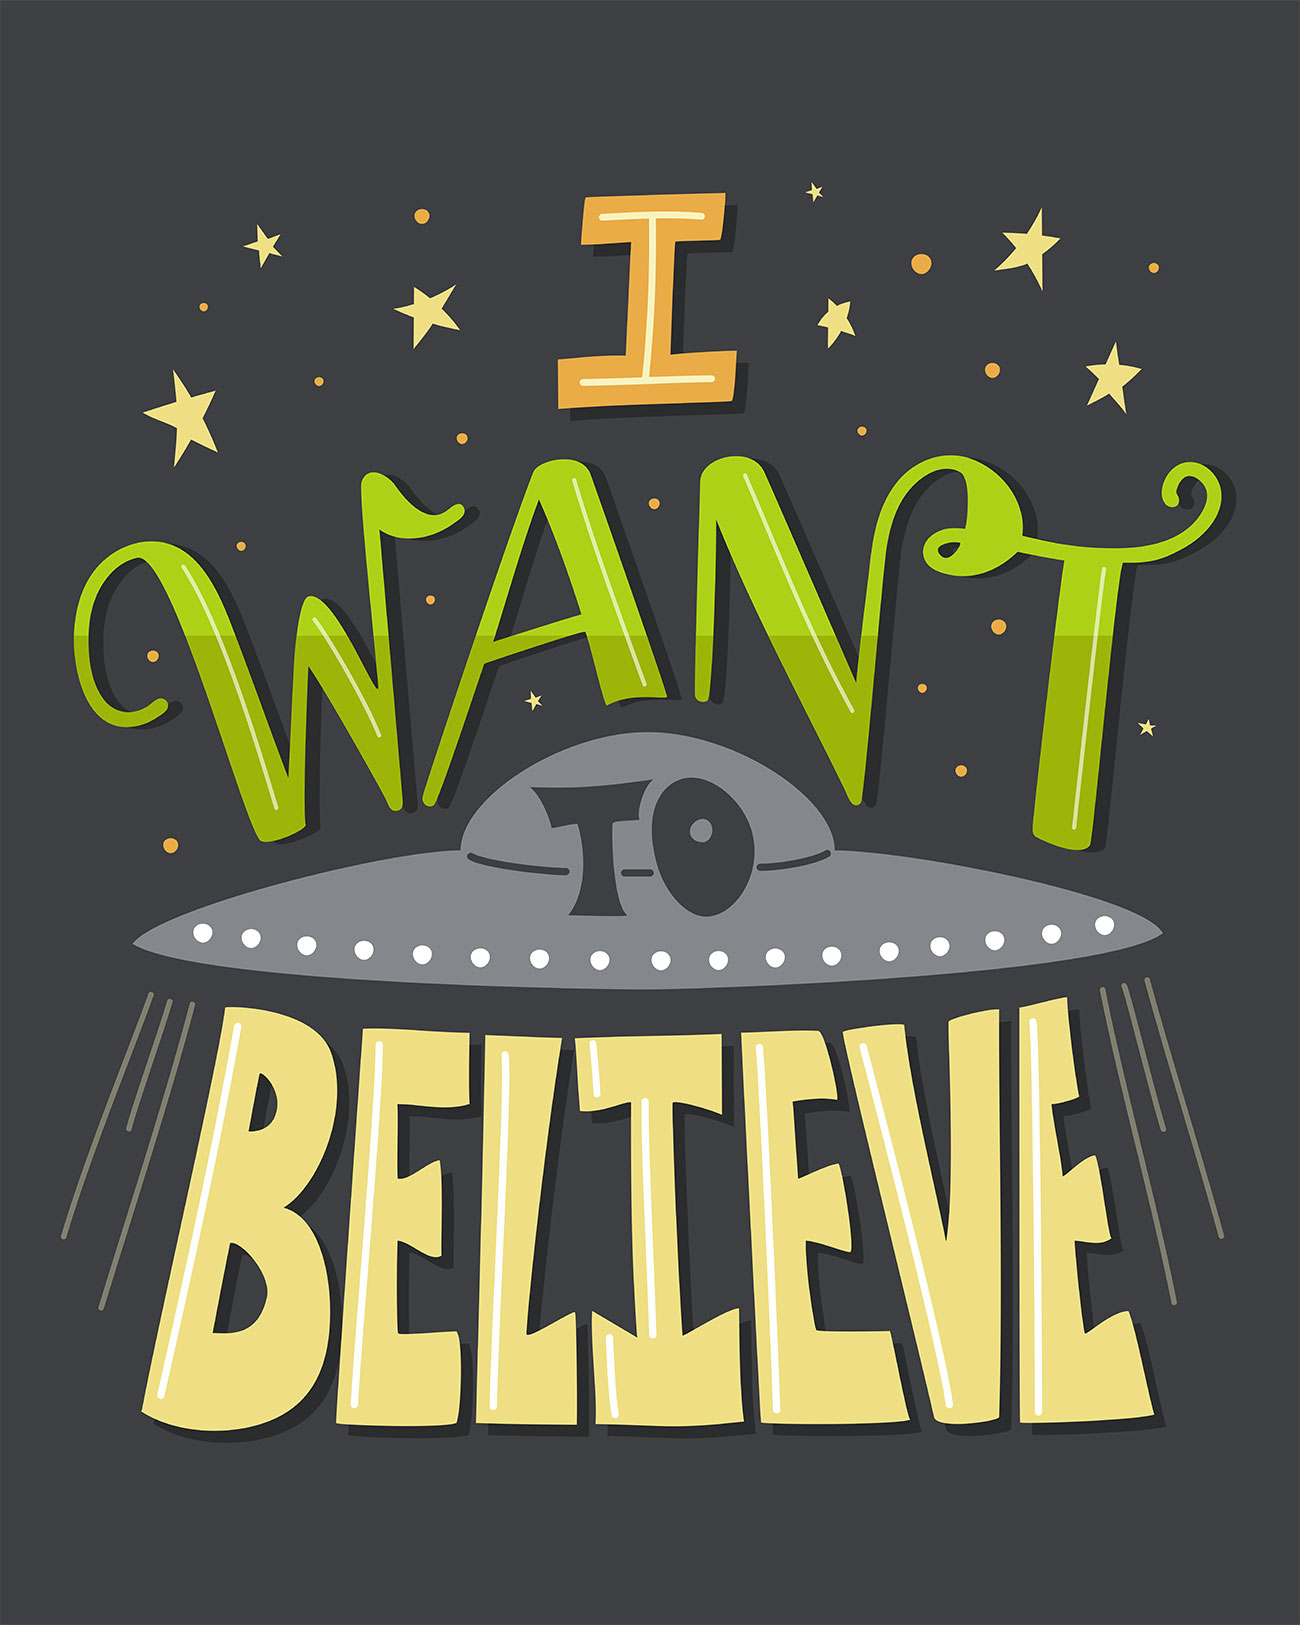 I want to believe hand-lettered quote poster